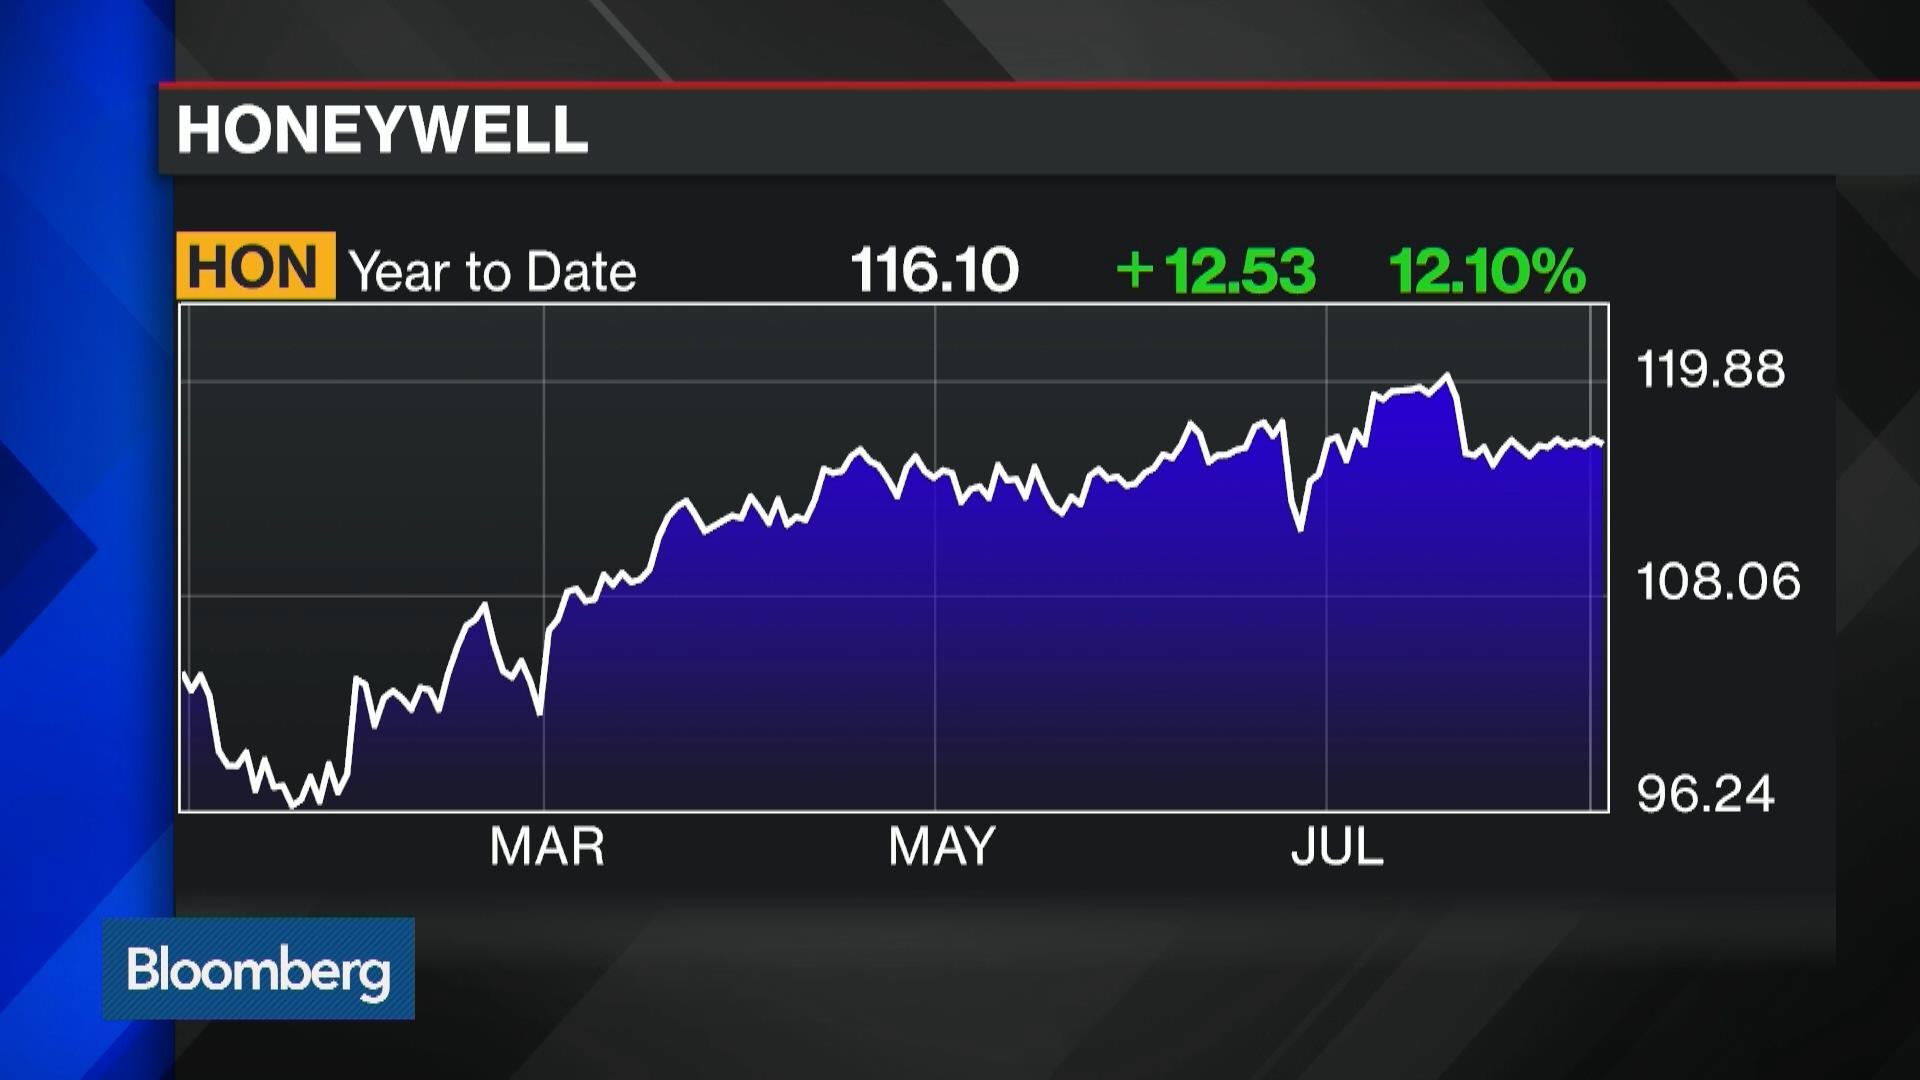 HON:New York Stock Quote - Honeywell International Inc